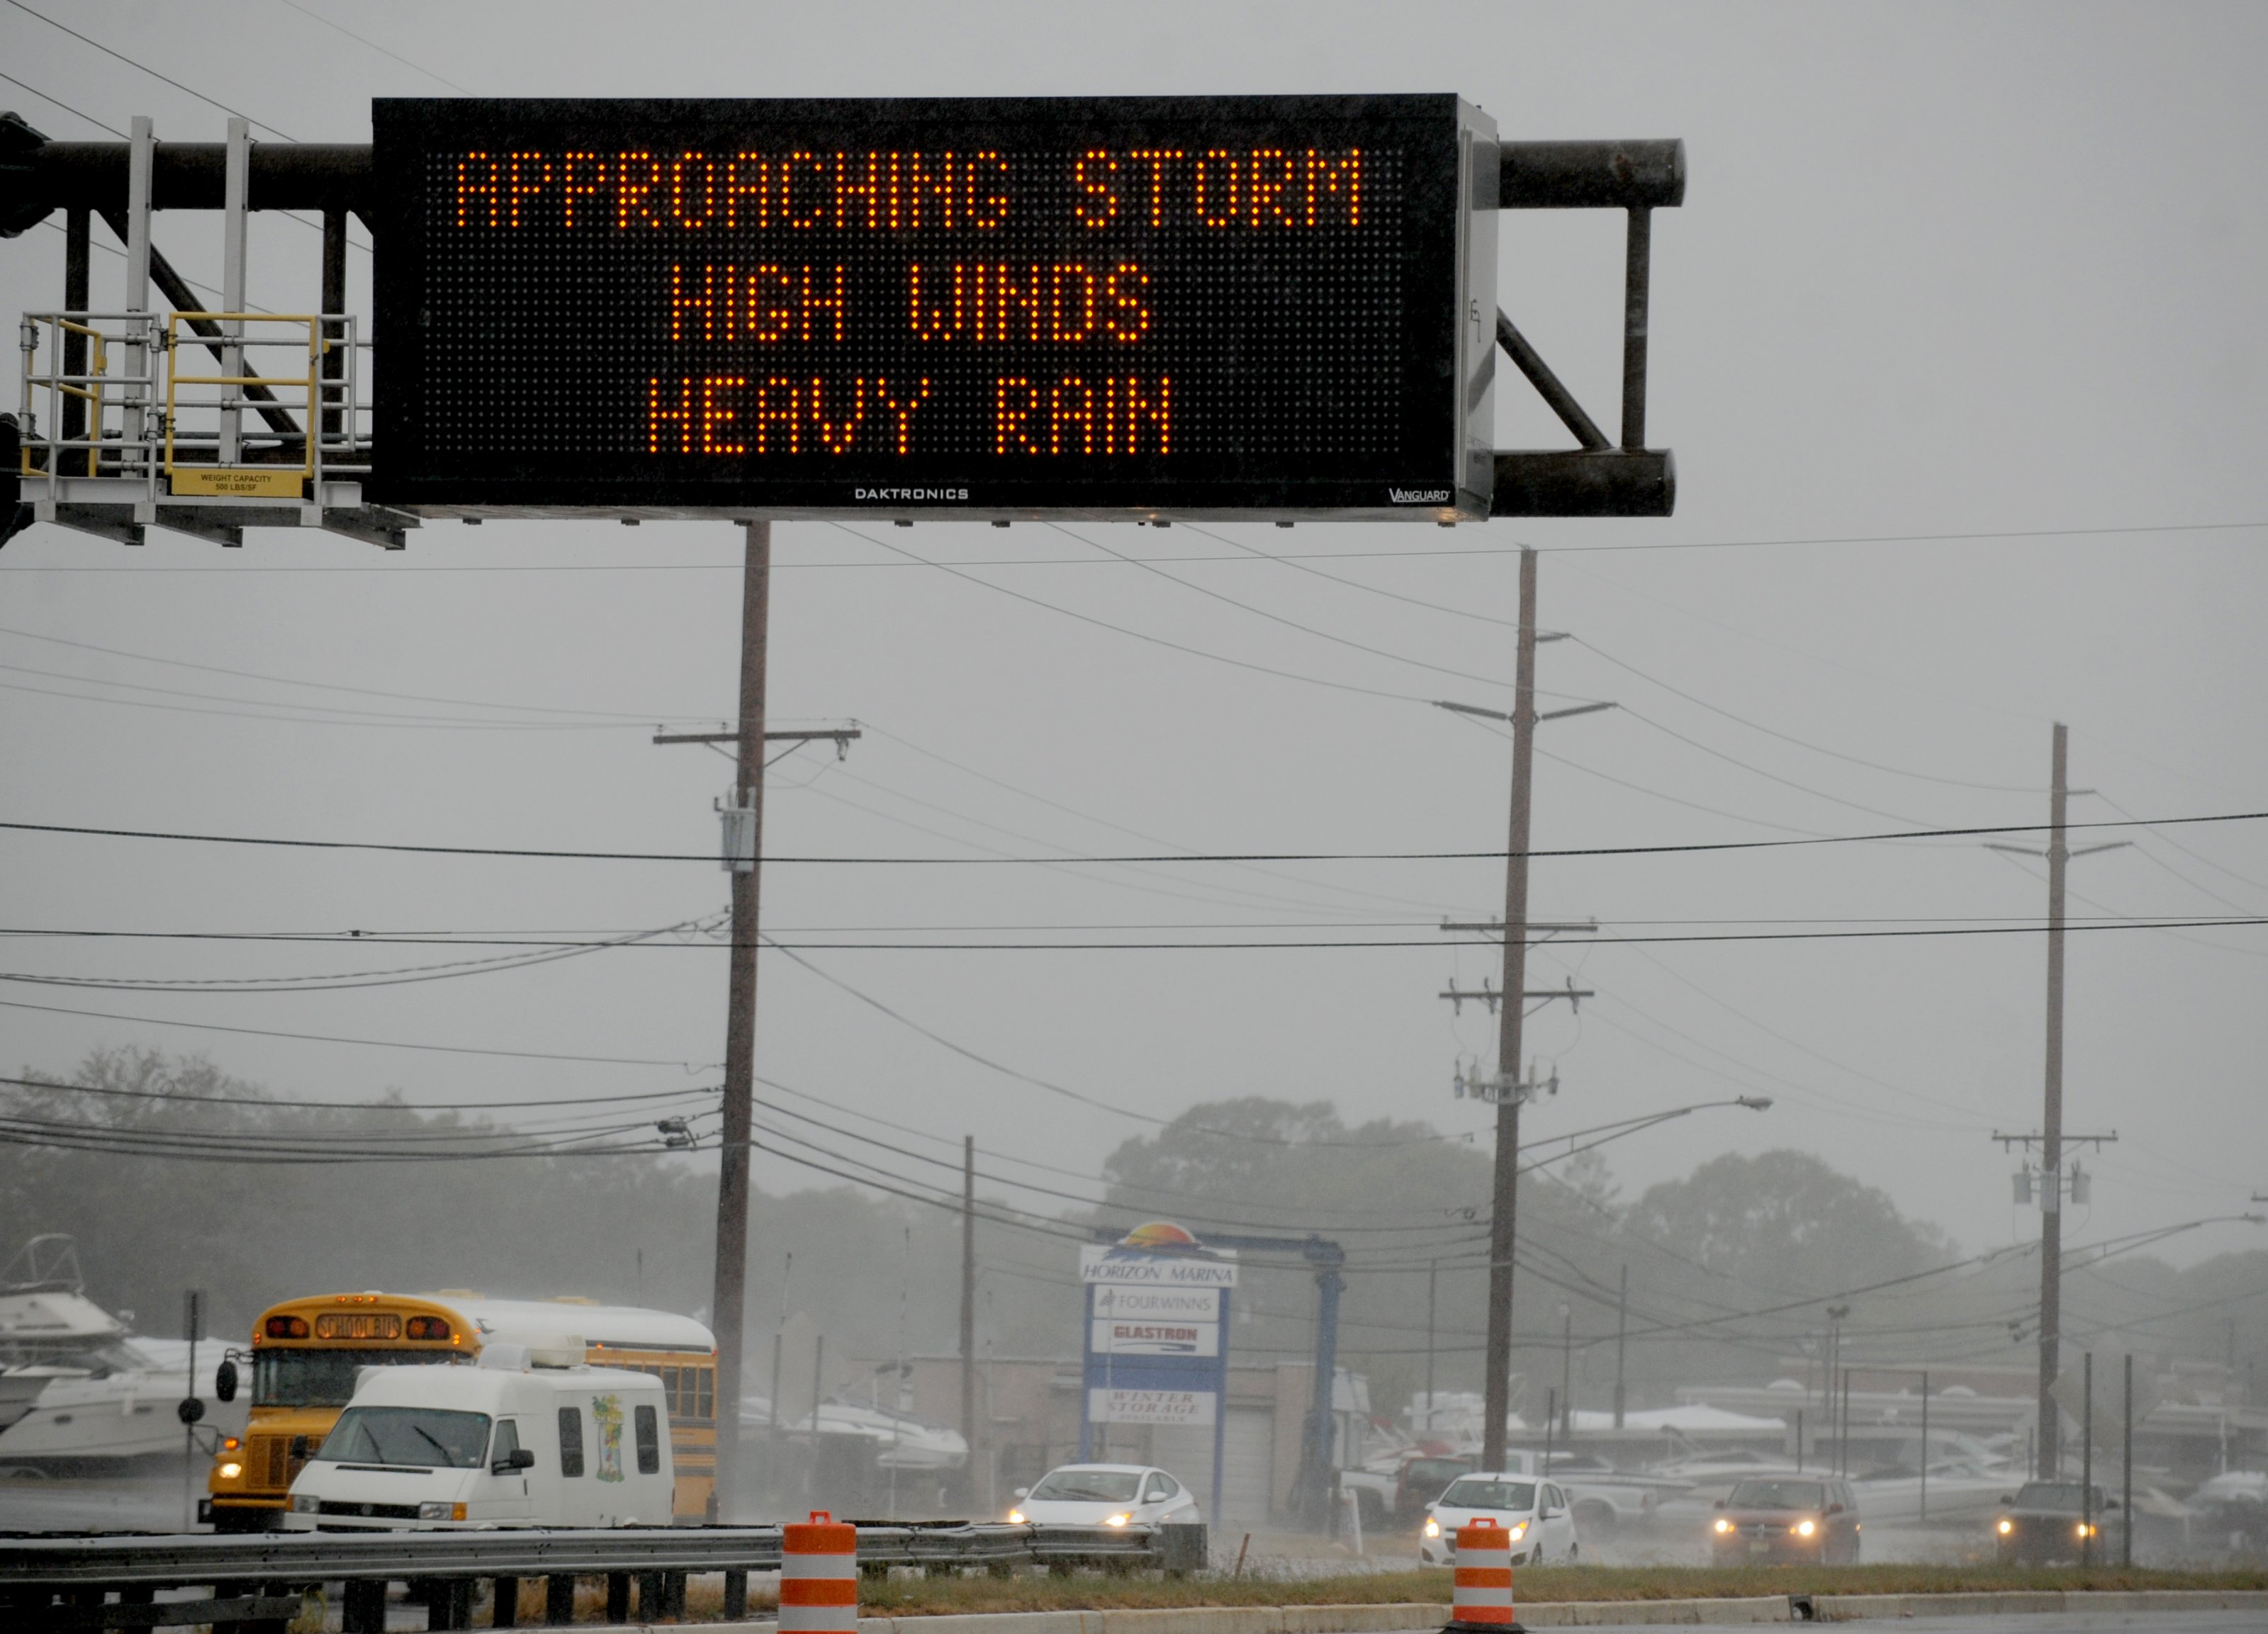 Wind and rain from Hurricane Joaquin arrives on the east coast of the United States on October 2, 2015 in Seaside Heights, NJ. The flooding scenario will develop Friday night and through the weekend as flash flood watches extend from Atlanta to near New York City. Photo by Dennis Van Tine/ABACAPRESS.COM